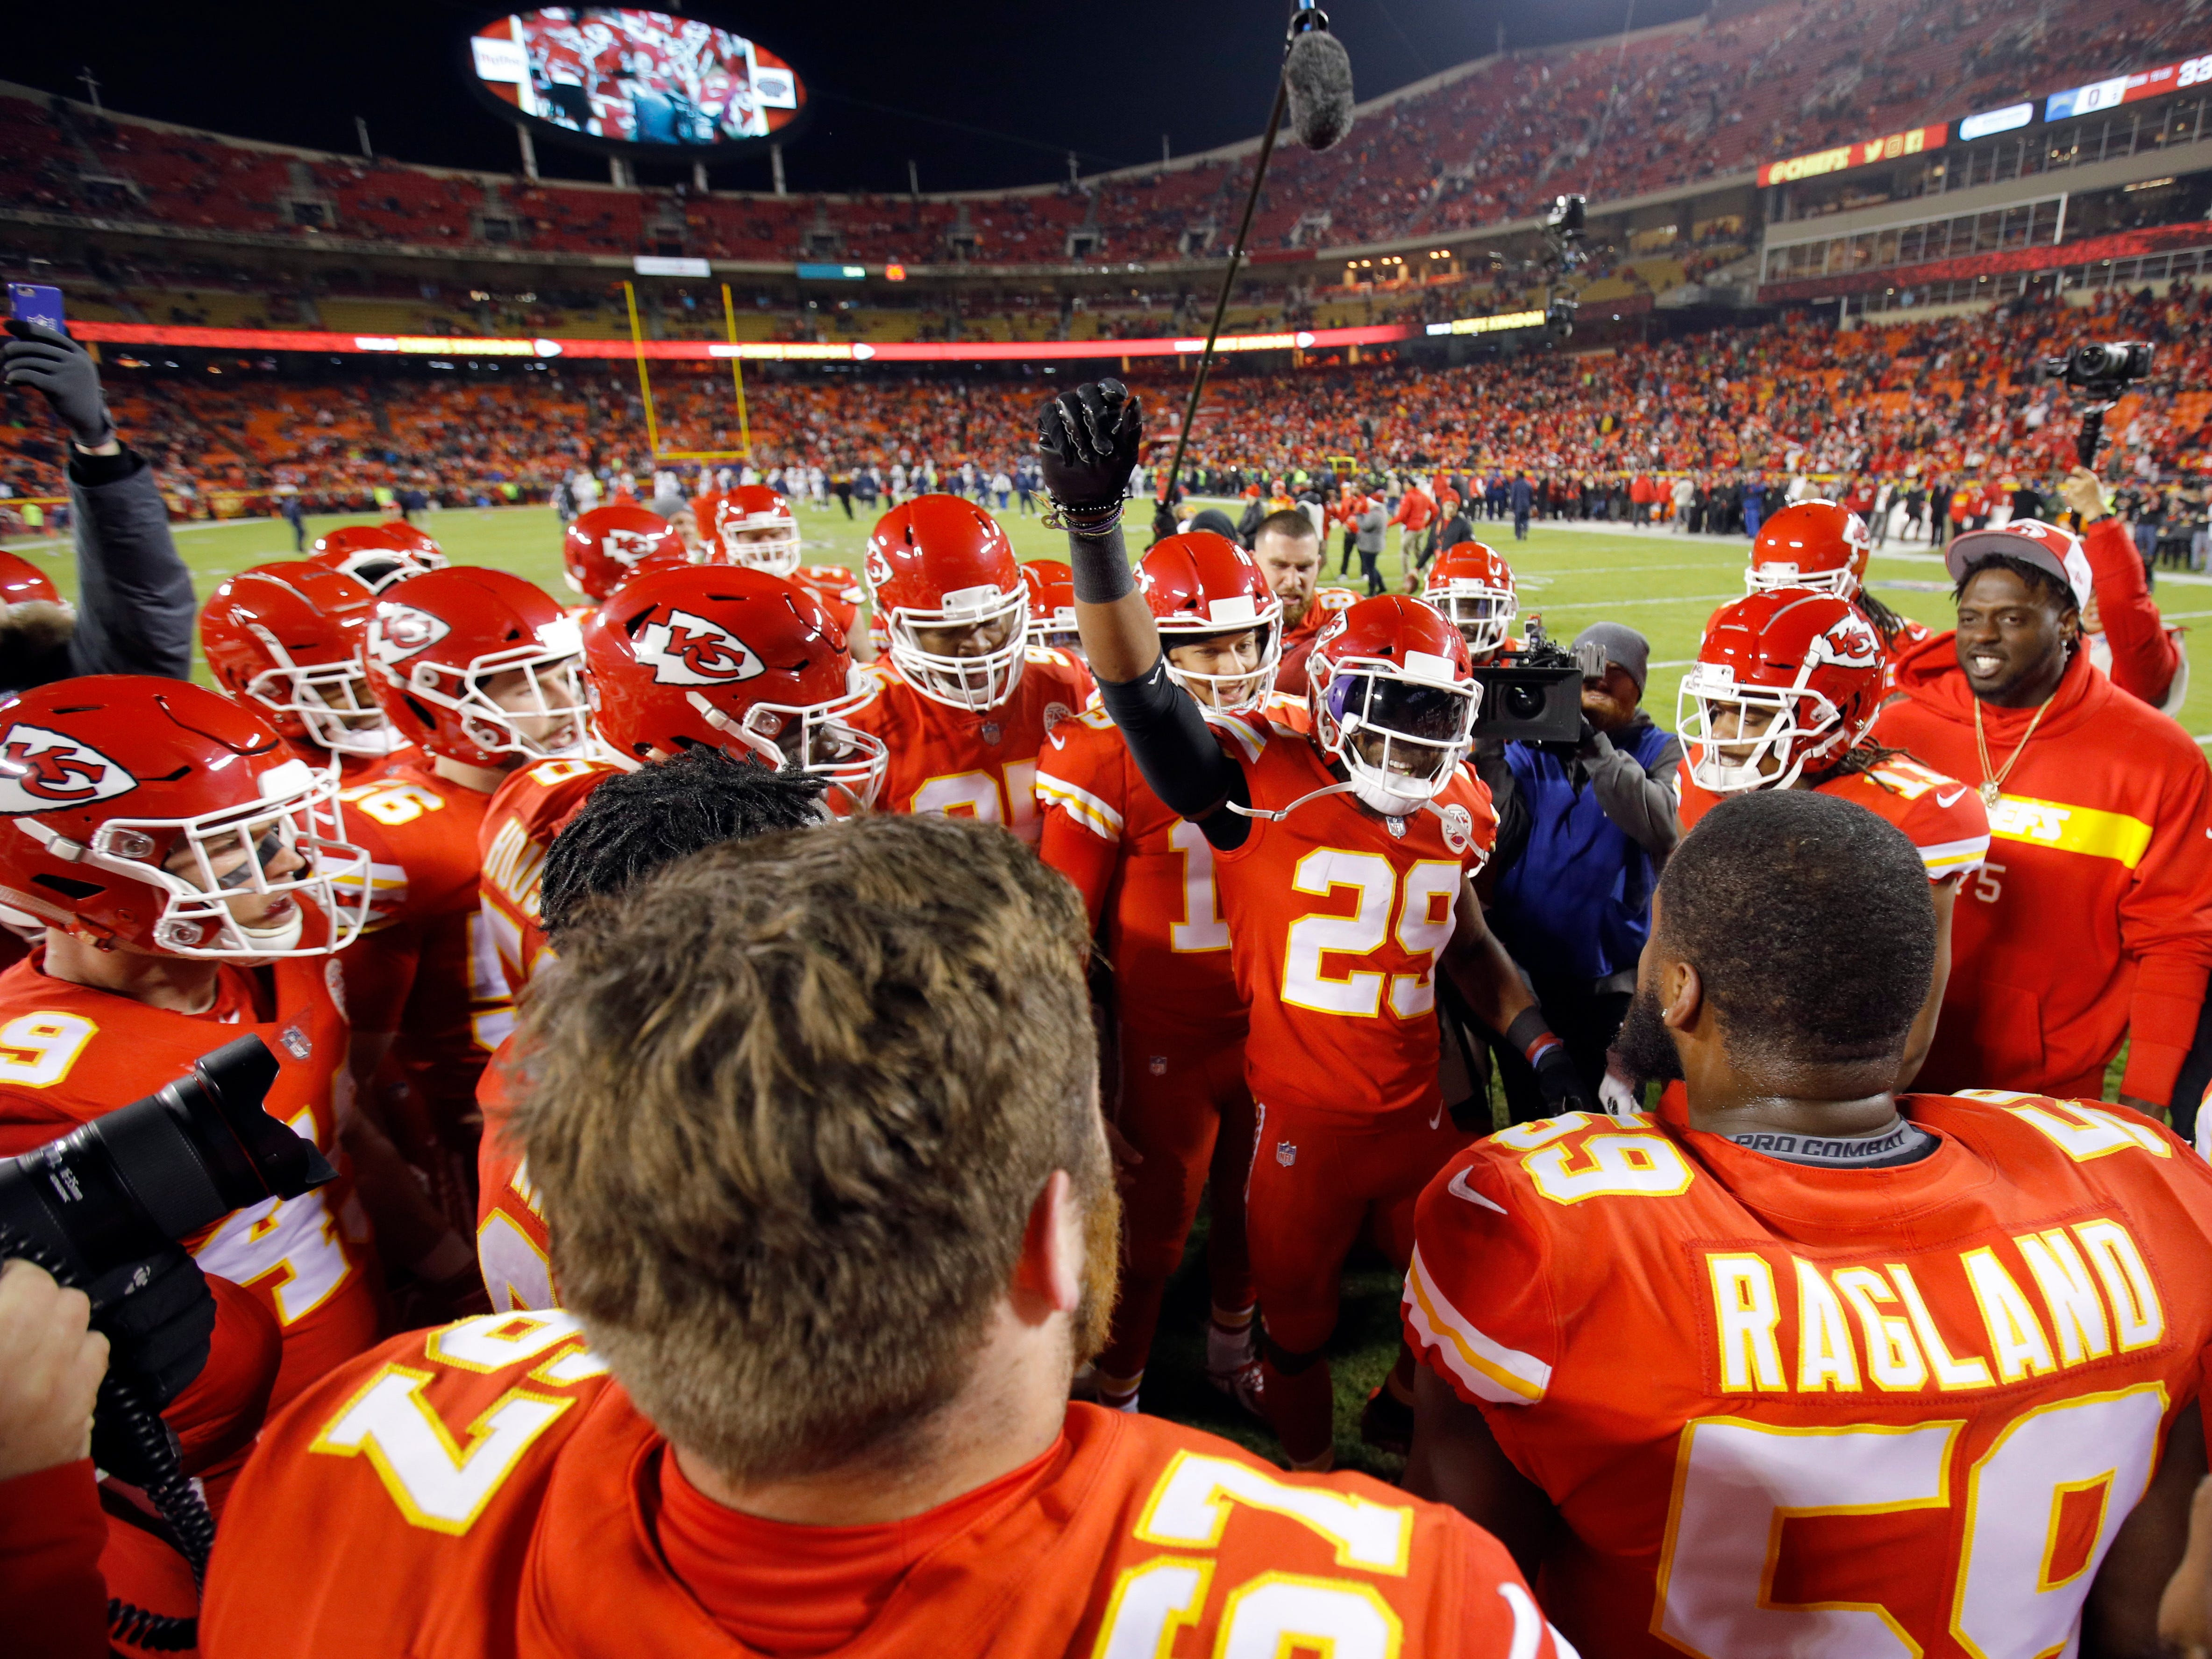 Kansas City Chiefs players gather around defensive back Eric Berry (29) and quarterback Patrick Mahomes (15) before the game against the Los Angeles Chargers.